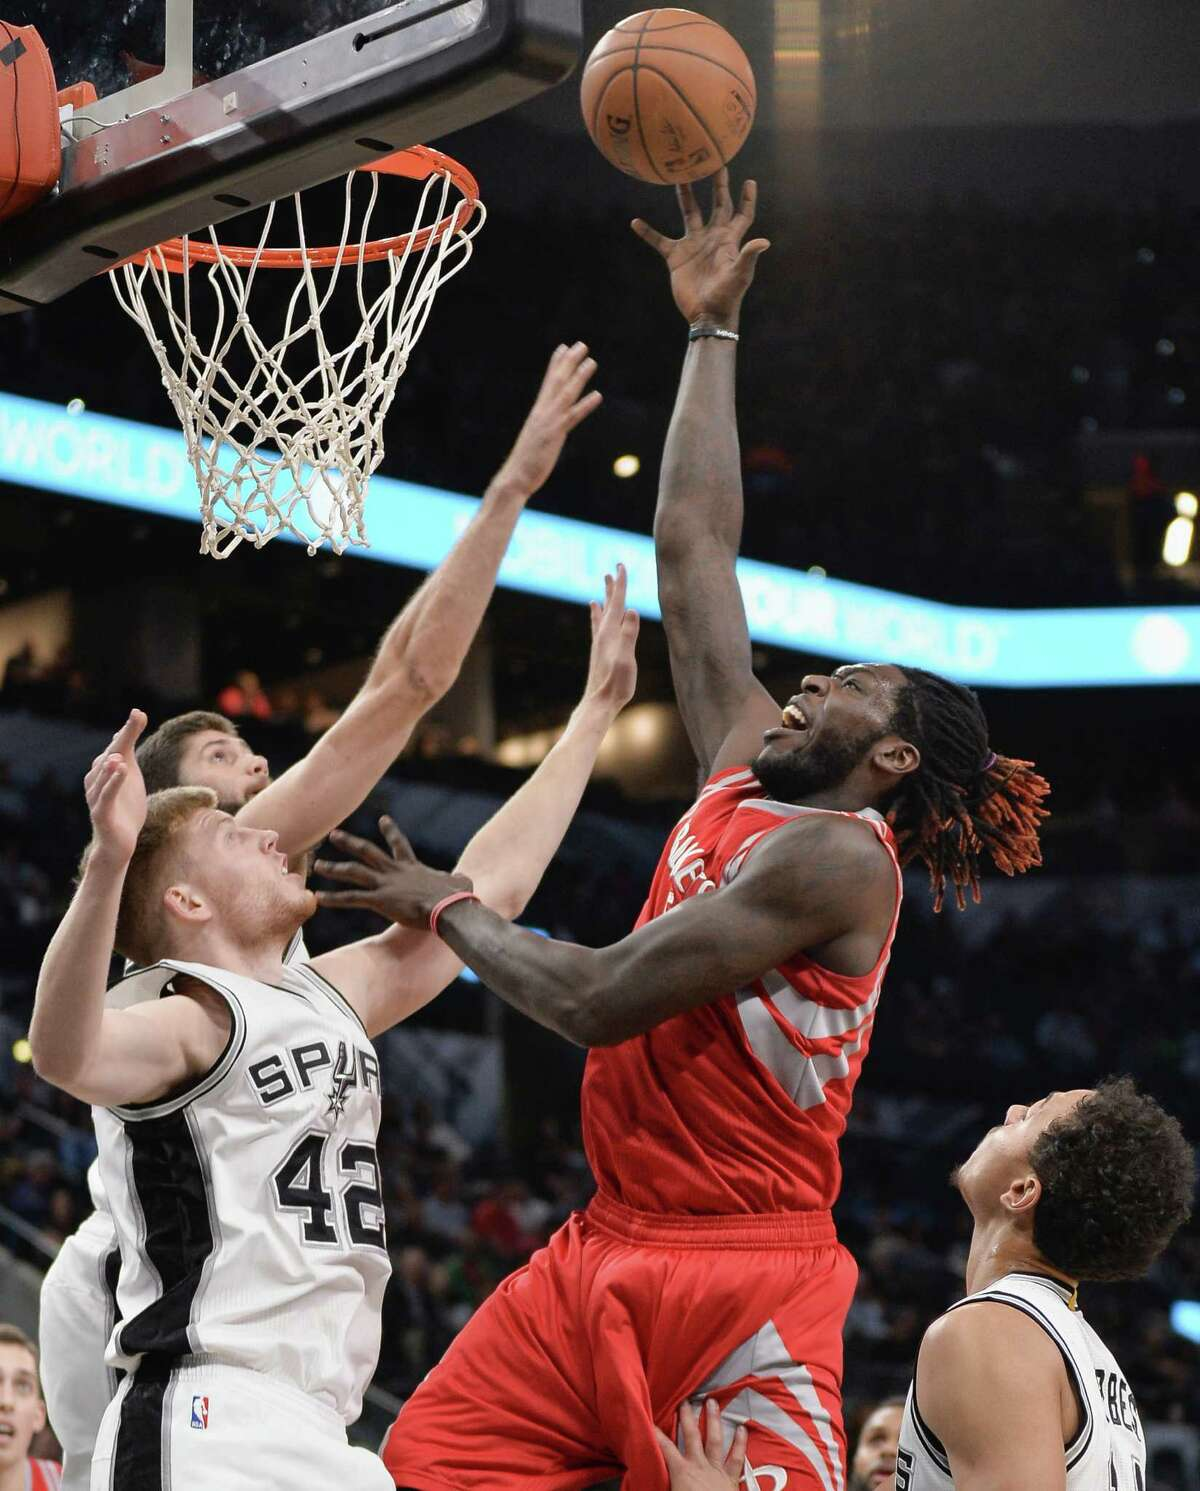 Houston Rockets forward Montrezl Harrell, center, shoots against San Antonio Spurs' Davis Bertans (42), of Latvia; Bryn Forbes, right; and Patricio Garino, of Argentina, during the first half of a preseason NBA basketball game, Friday, Oct. 21, 2016, in San Antonio. (AP Photo/Darren Abate)